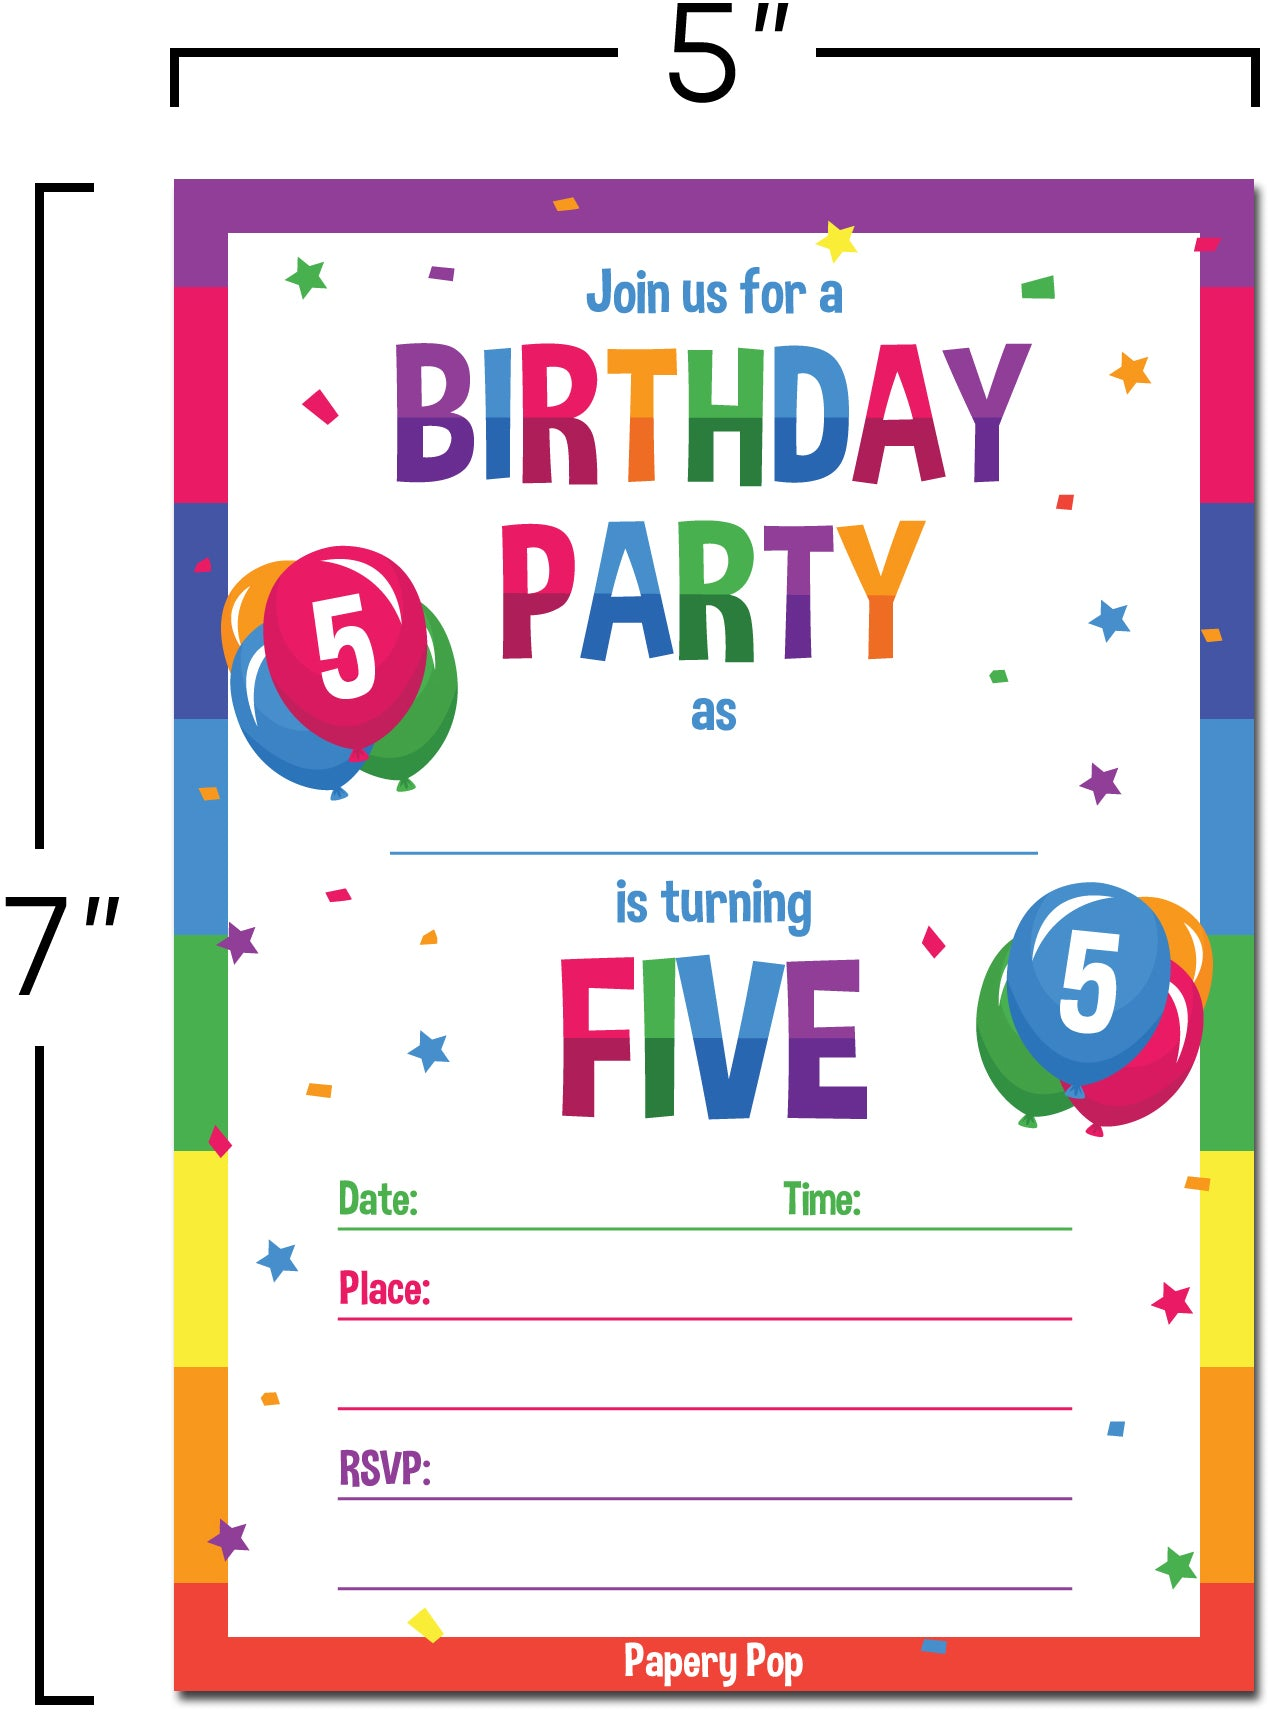 5 year old birthday party invitations with envelopes 15 count 5 year old birthday party invitations with envelopes 15 count kids birthday invitations filmwisefo